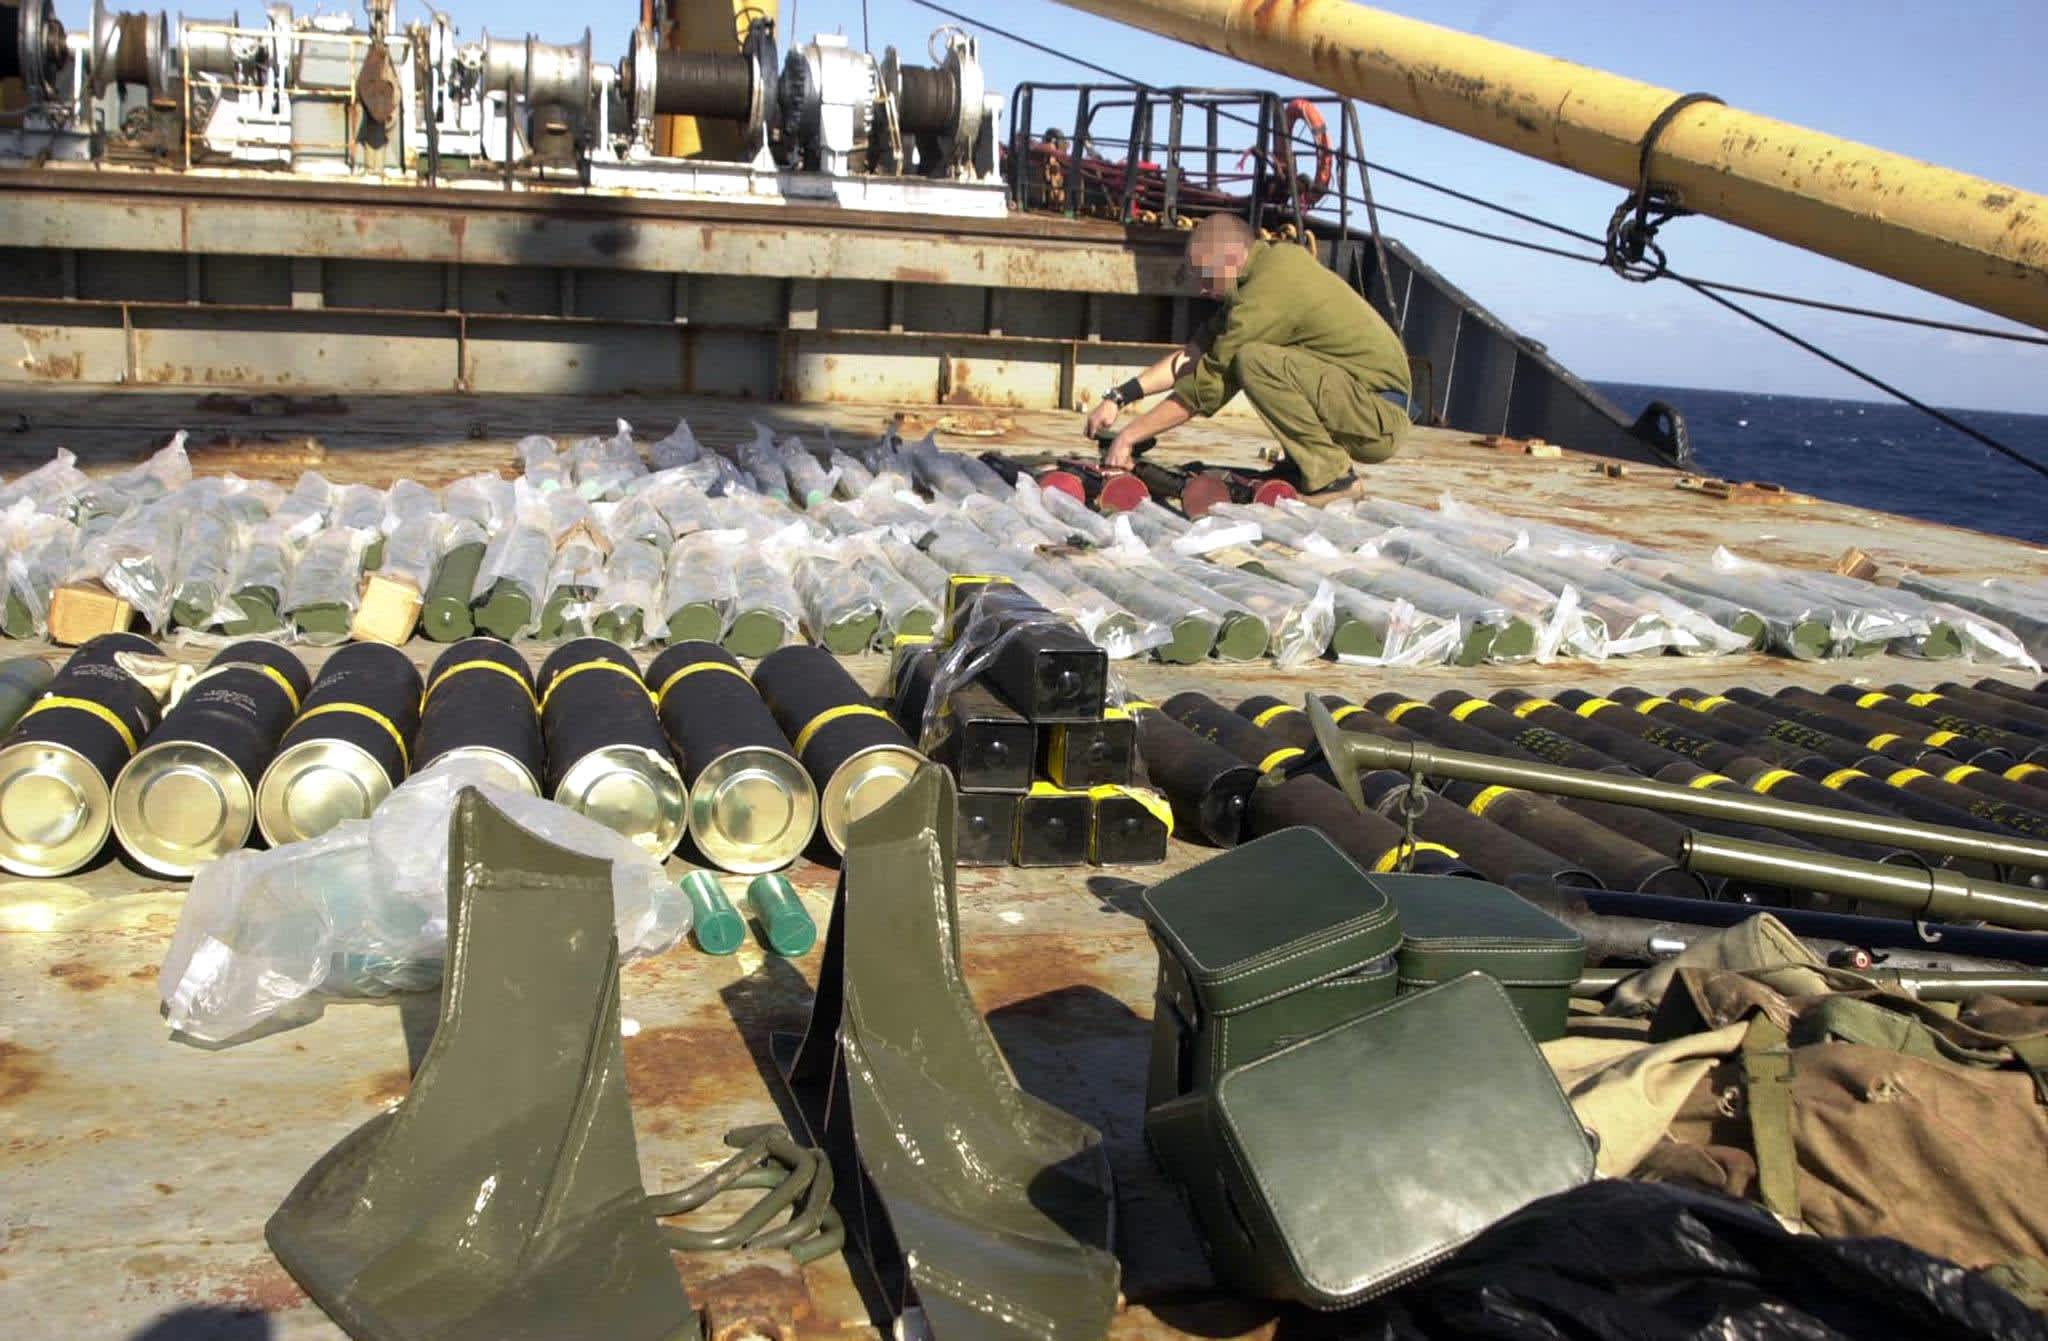 Weapons and explosives found aboard the smuggling ship Karine A, intercepted by the Israeli Navy (IDF / AFP)